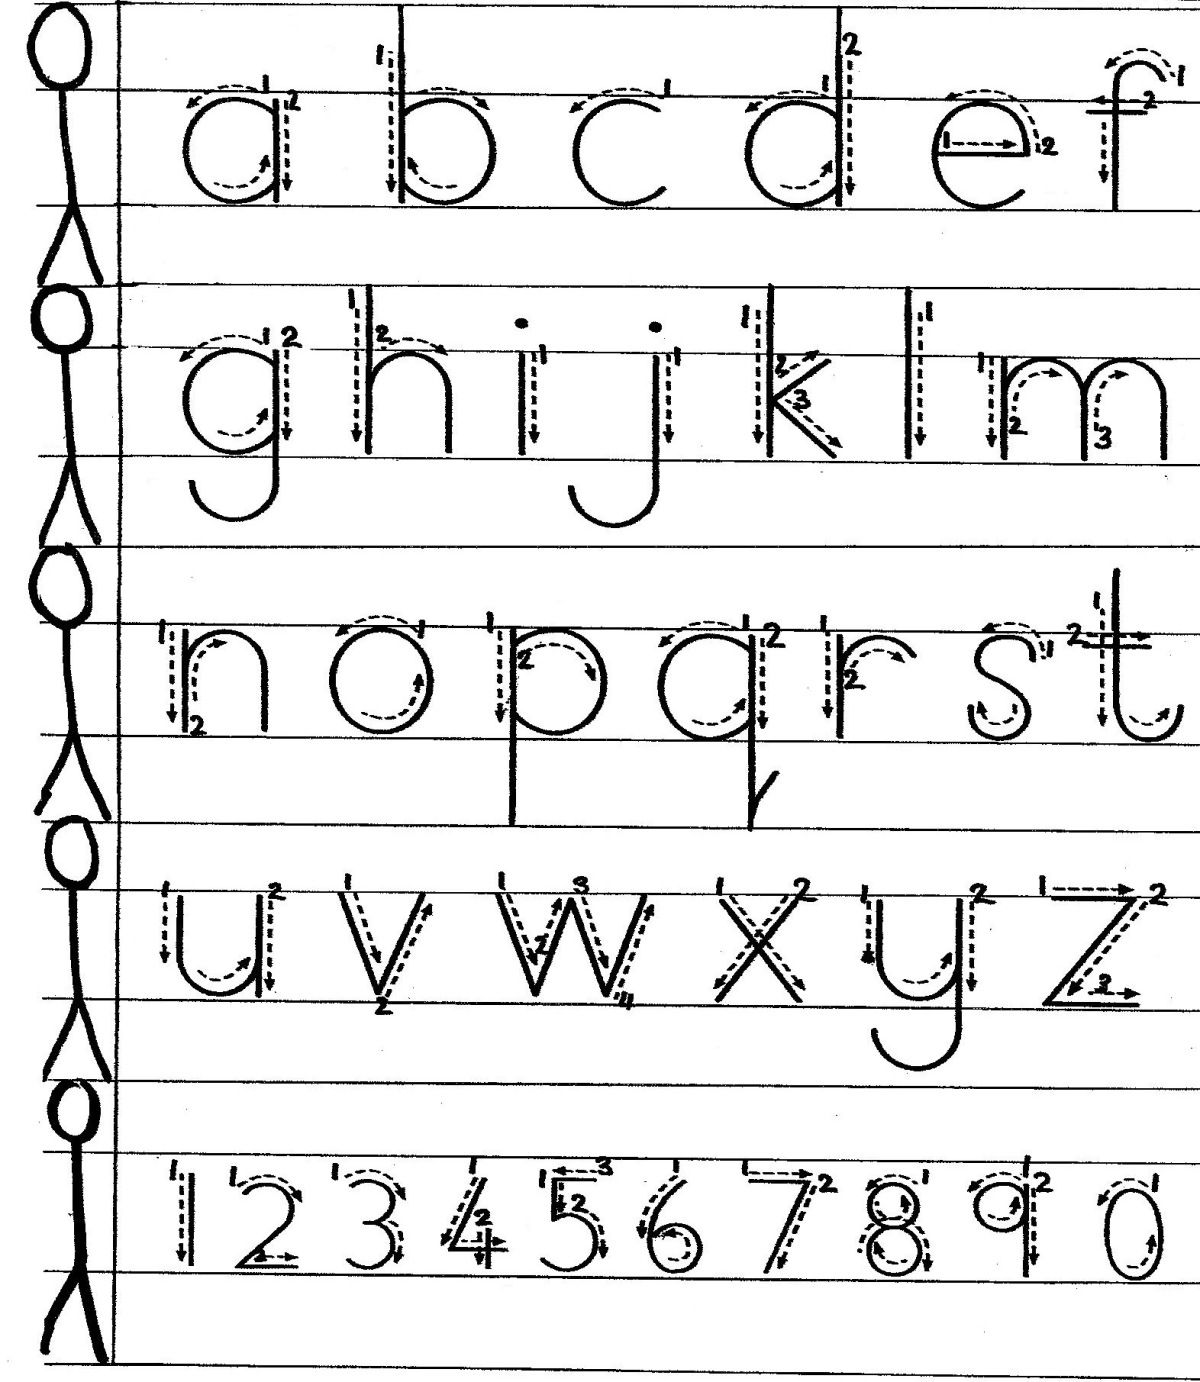 Handwriting Line Upon Line Handwriting Lines Teaching Handwriting Alphabet Writing Worksheets How to write abcd in lines